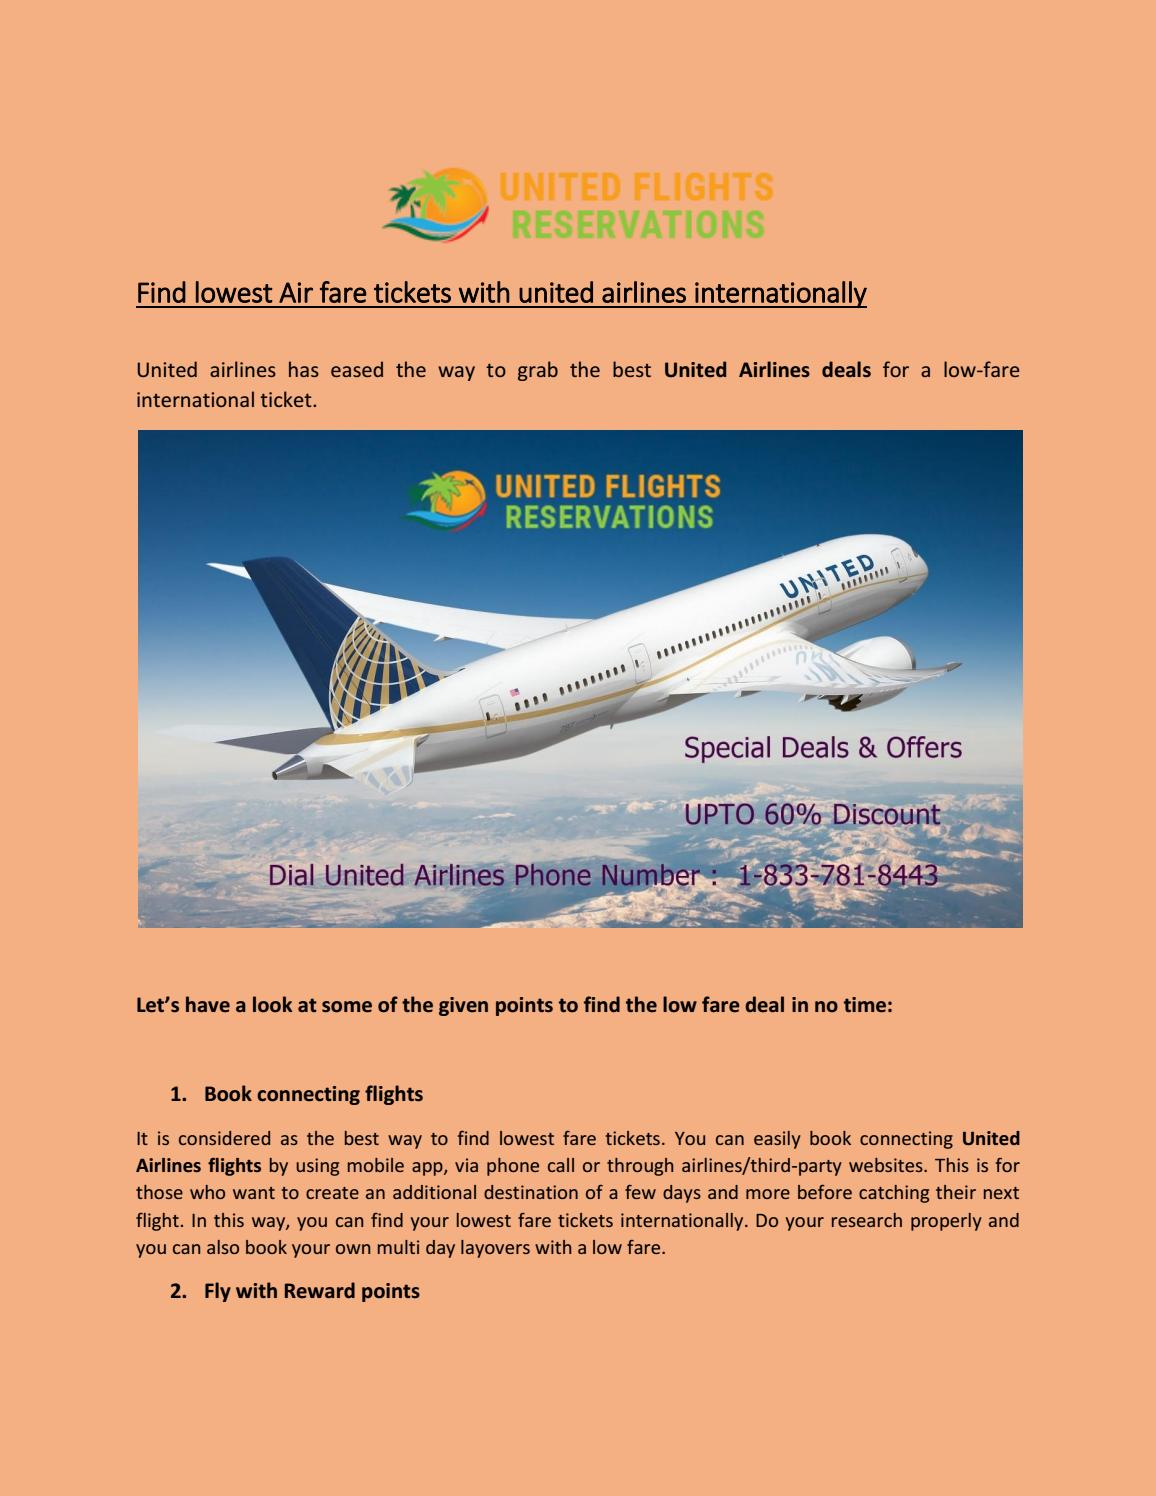 Special Deals And Seasonal Discounts On United Airlines Flights By Unitedflights Reservations Issuu